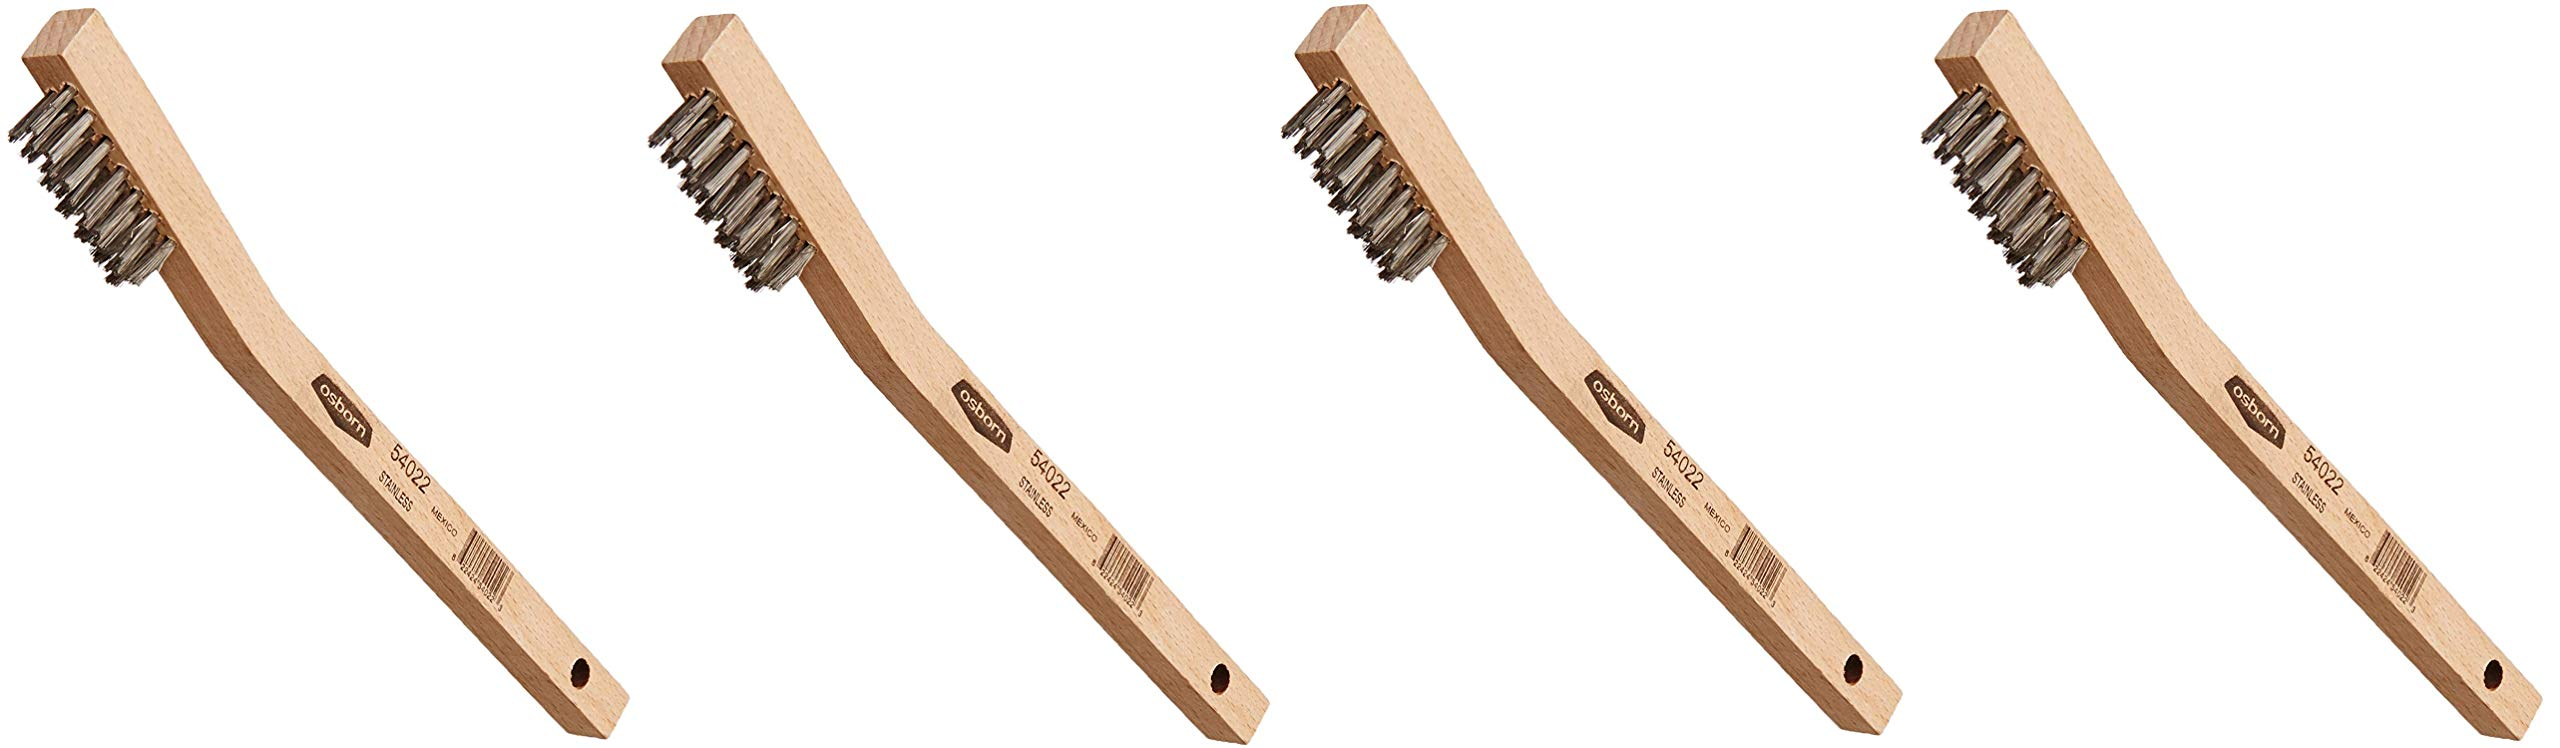 Osborn International 54022SP Small Cleaning Stainless Steel Wire Angle Back Scratch Brush, 0.006'' Fill Diameter, 1-7/16'' Brush Area Length, 7-3/4'' Overall Length (Fоur Paсk)